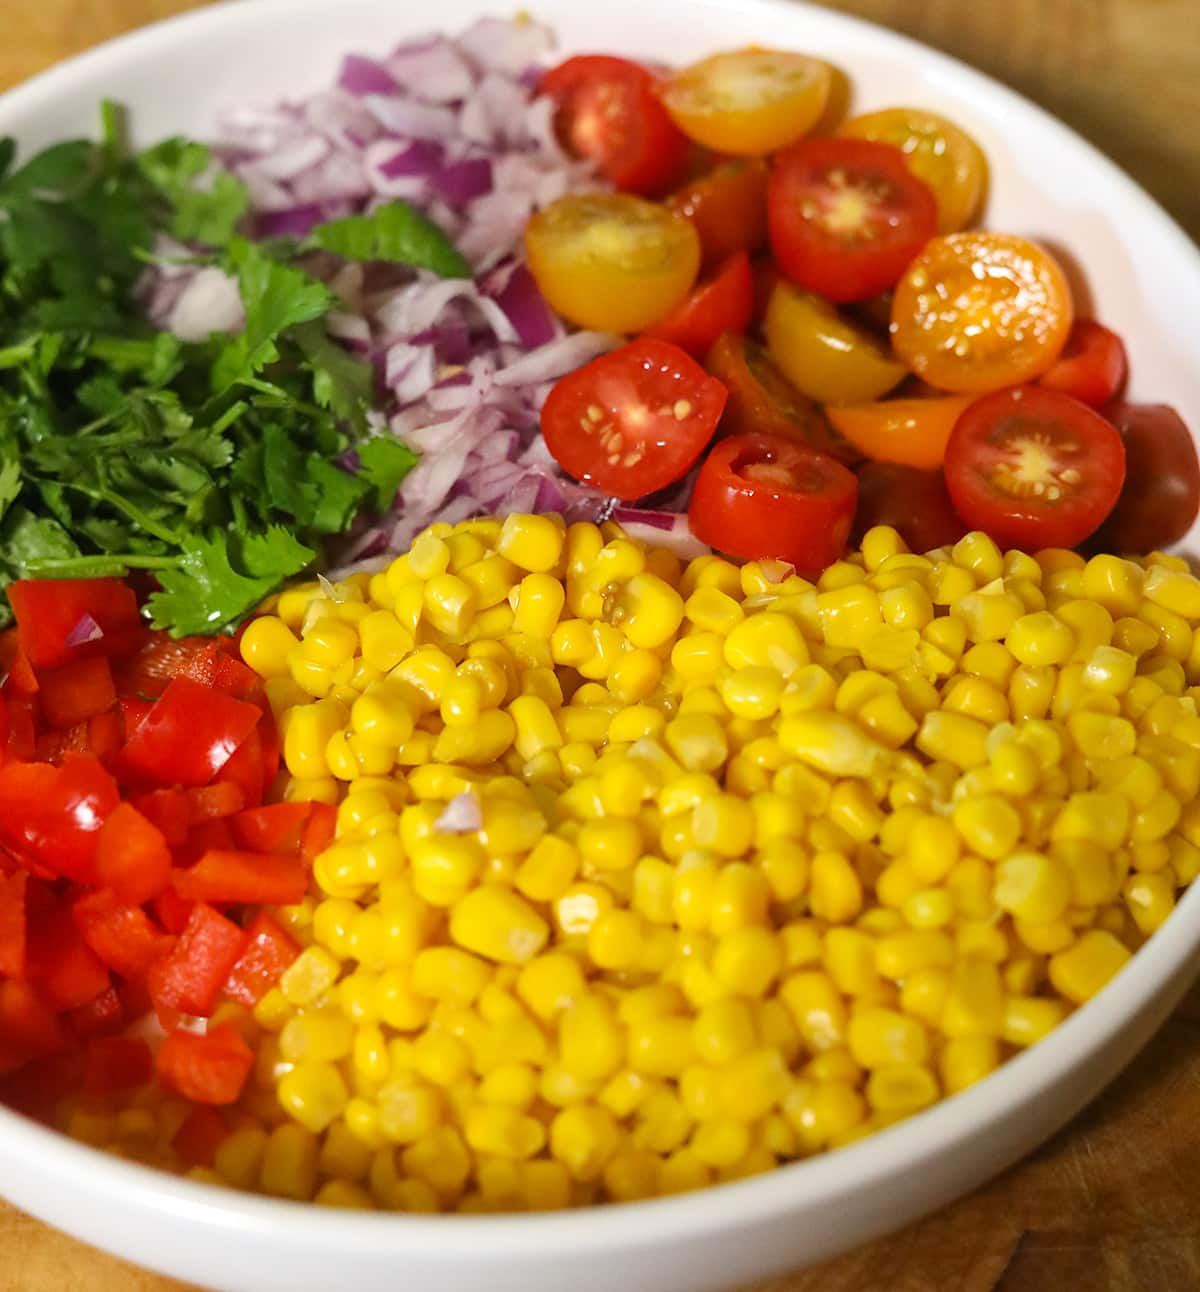 Ingredients for Mexican corn salad in a white bowl